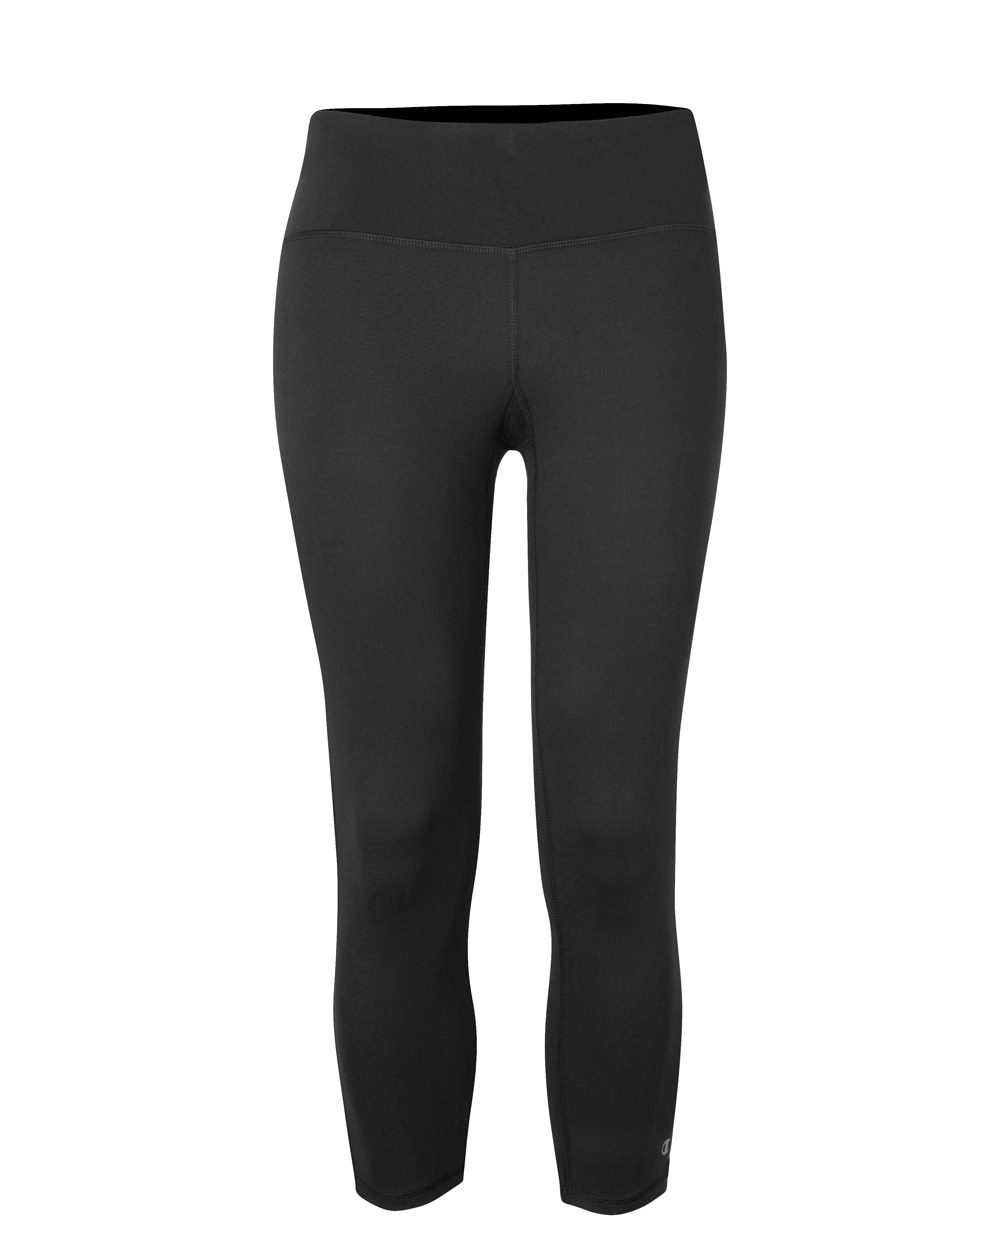 Hampion B960 - Women's Performance Capri Leggings